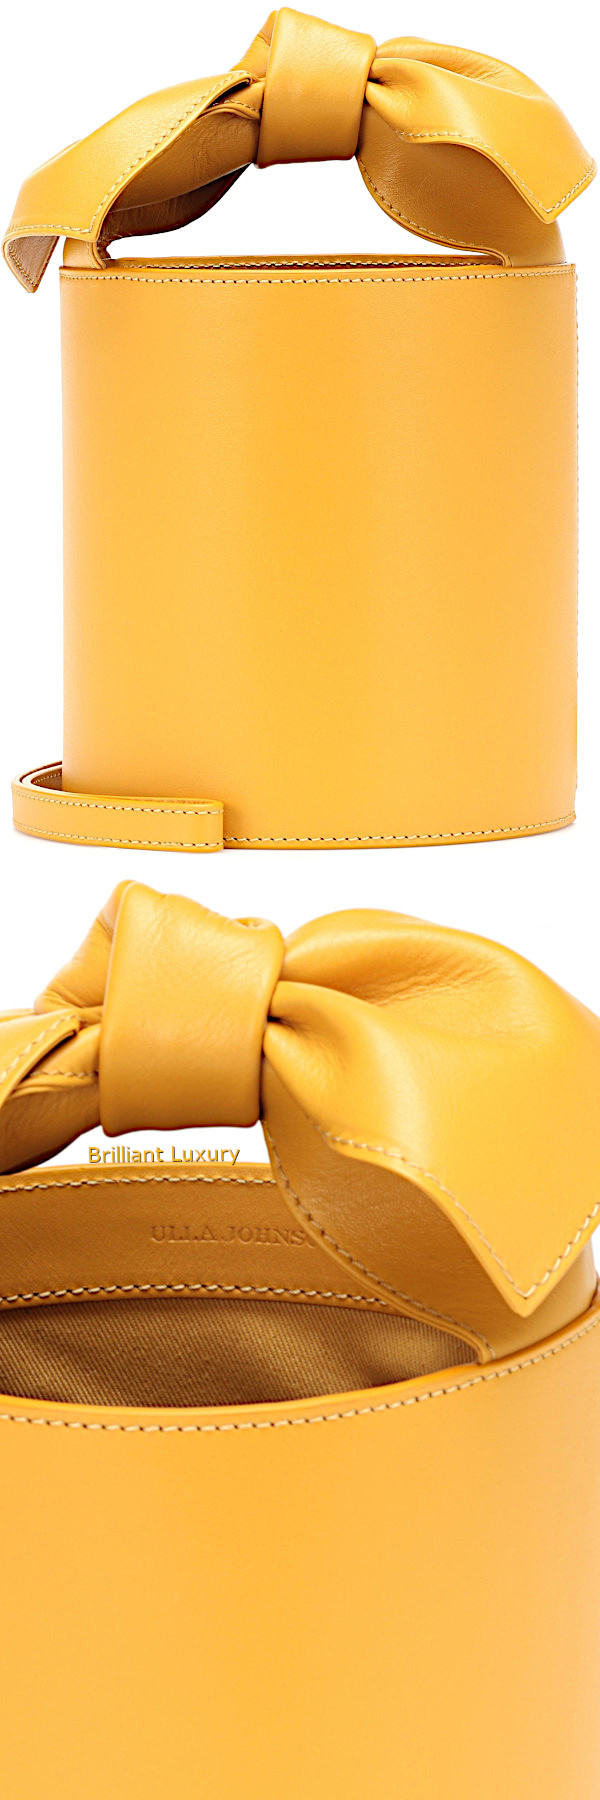 Brilliant Luxury│Ulla Johnson Sophie mini leather bucket bag in yellow